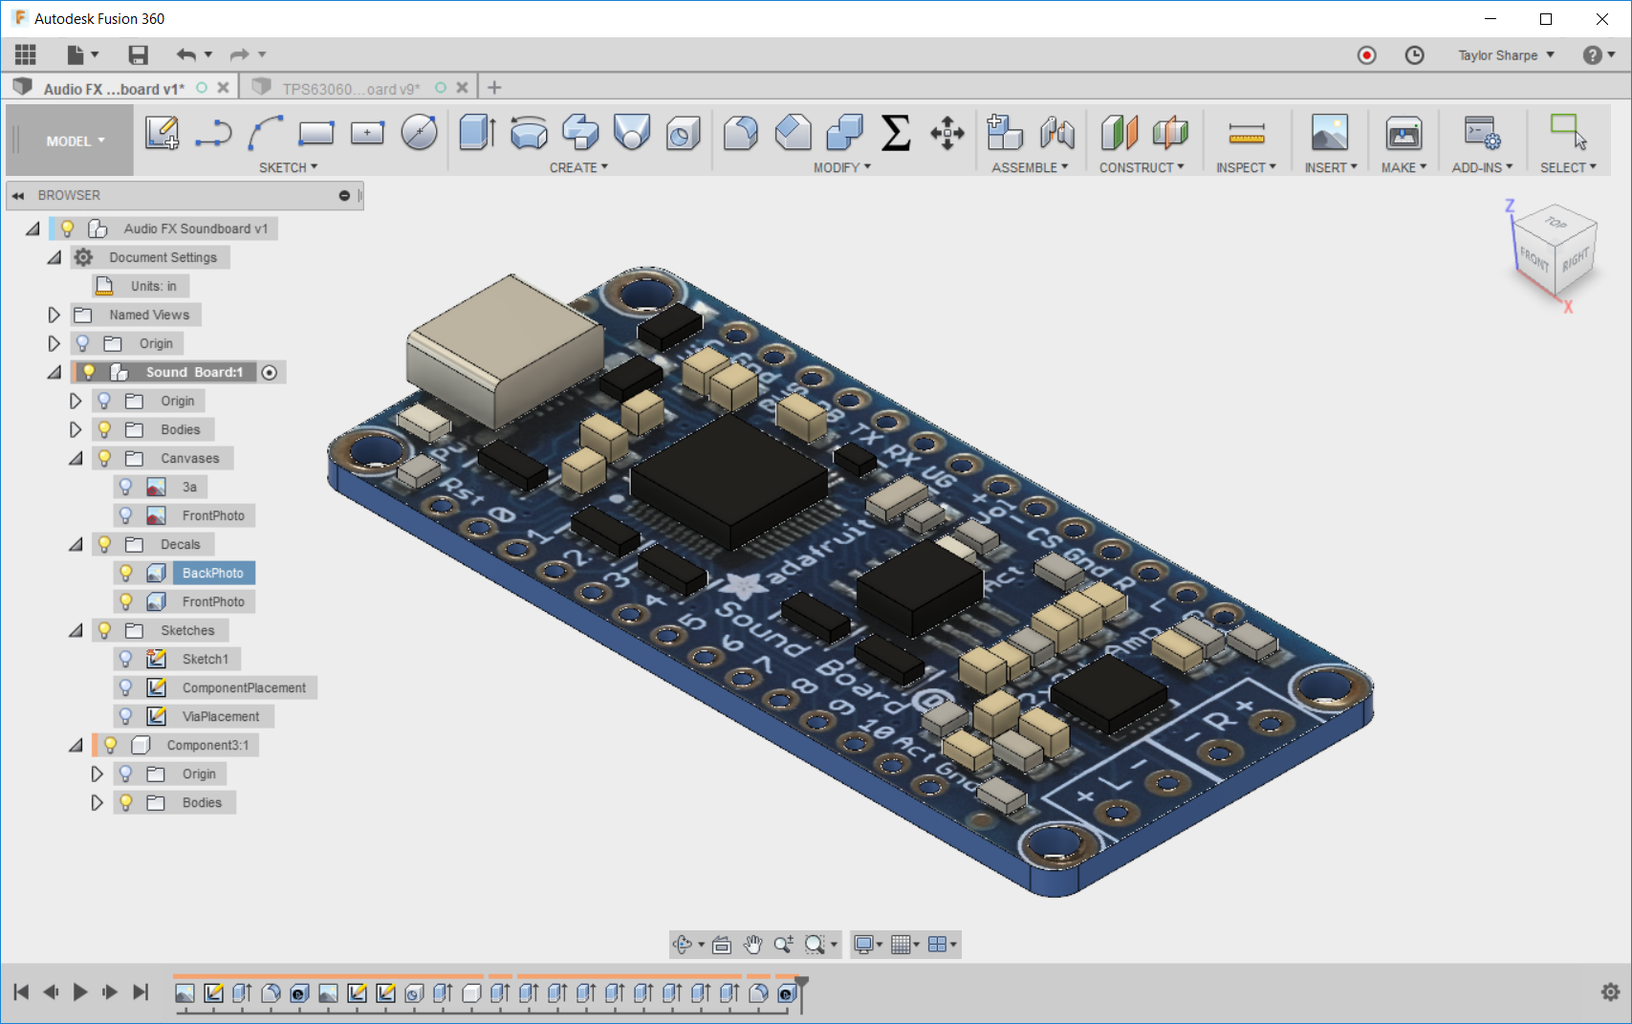 Use the Photos As Decals to Improve the PCB's Appearance